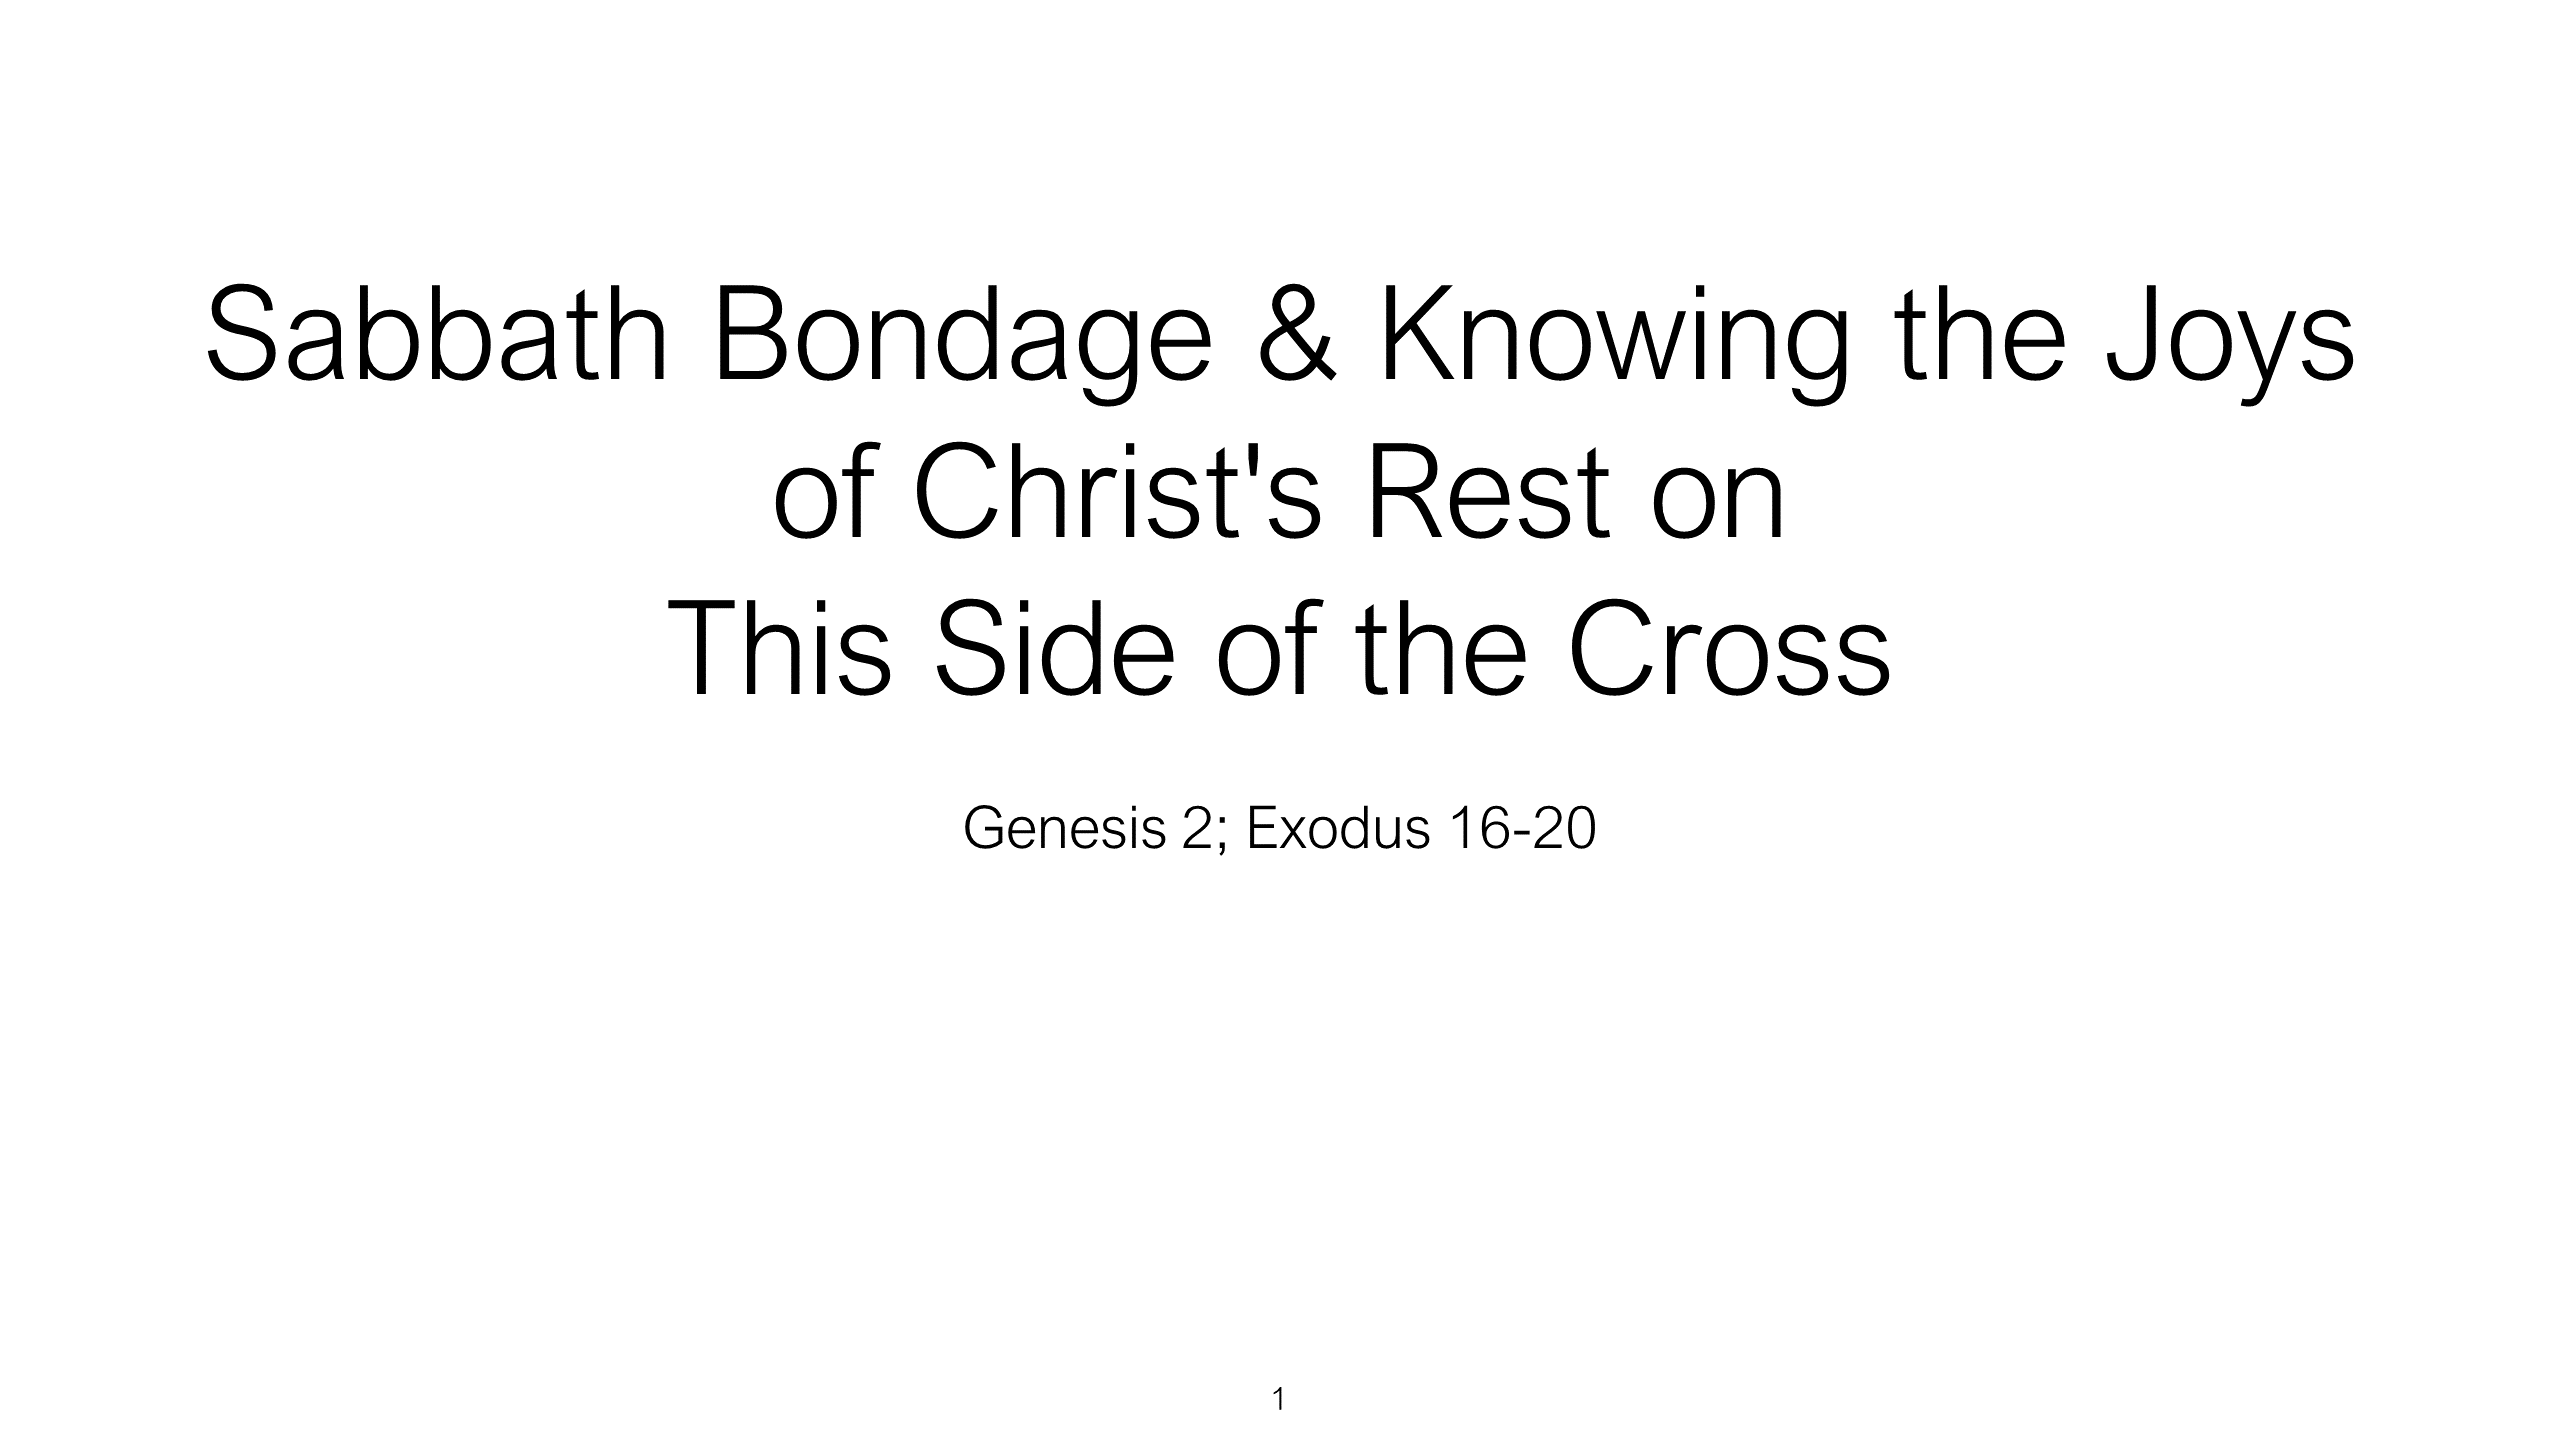 HFG-10 - Sabbath Bondage & Knowing The Joys Of Christ's Rest Of This Side Of The Cross (1)